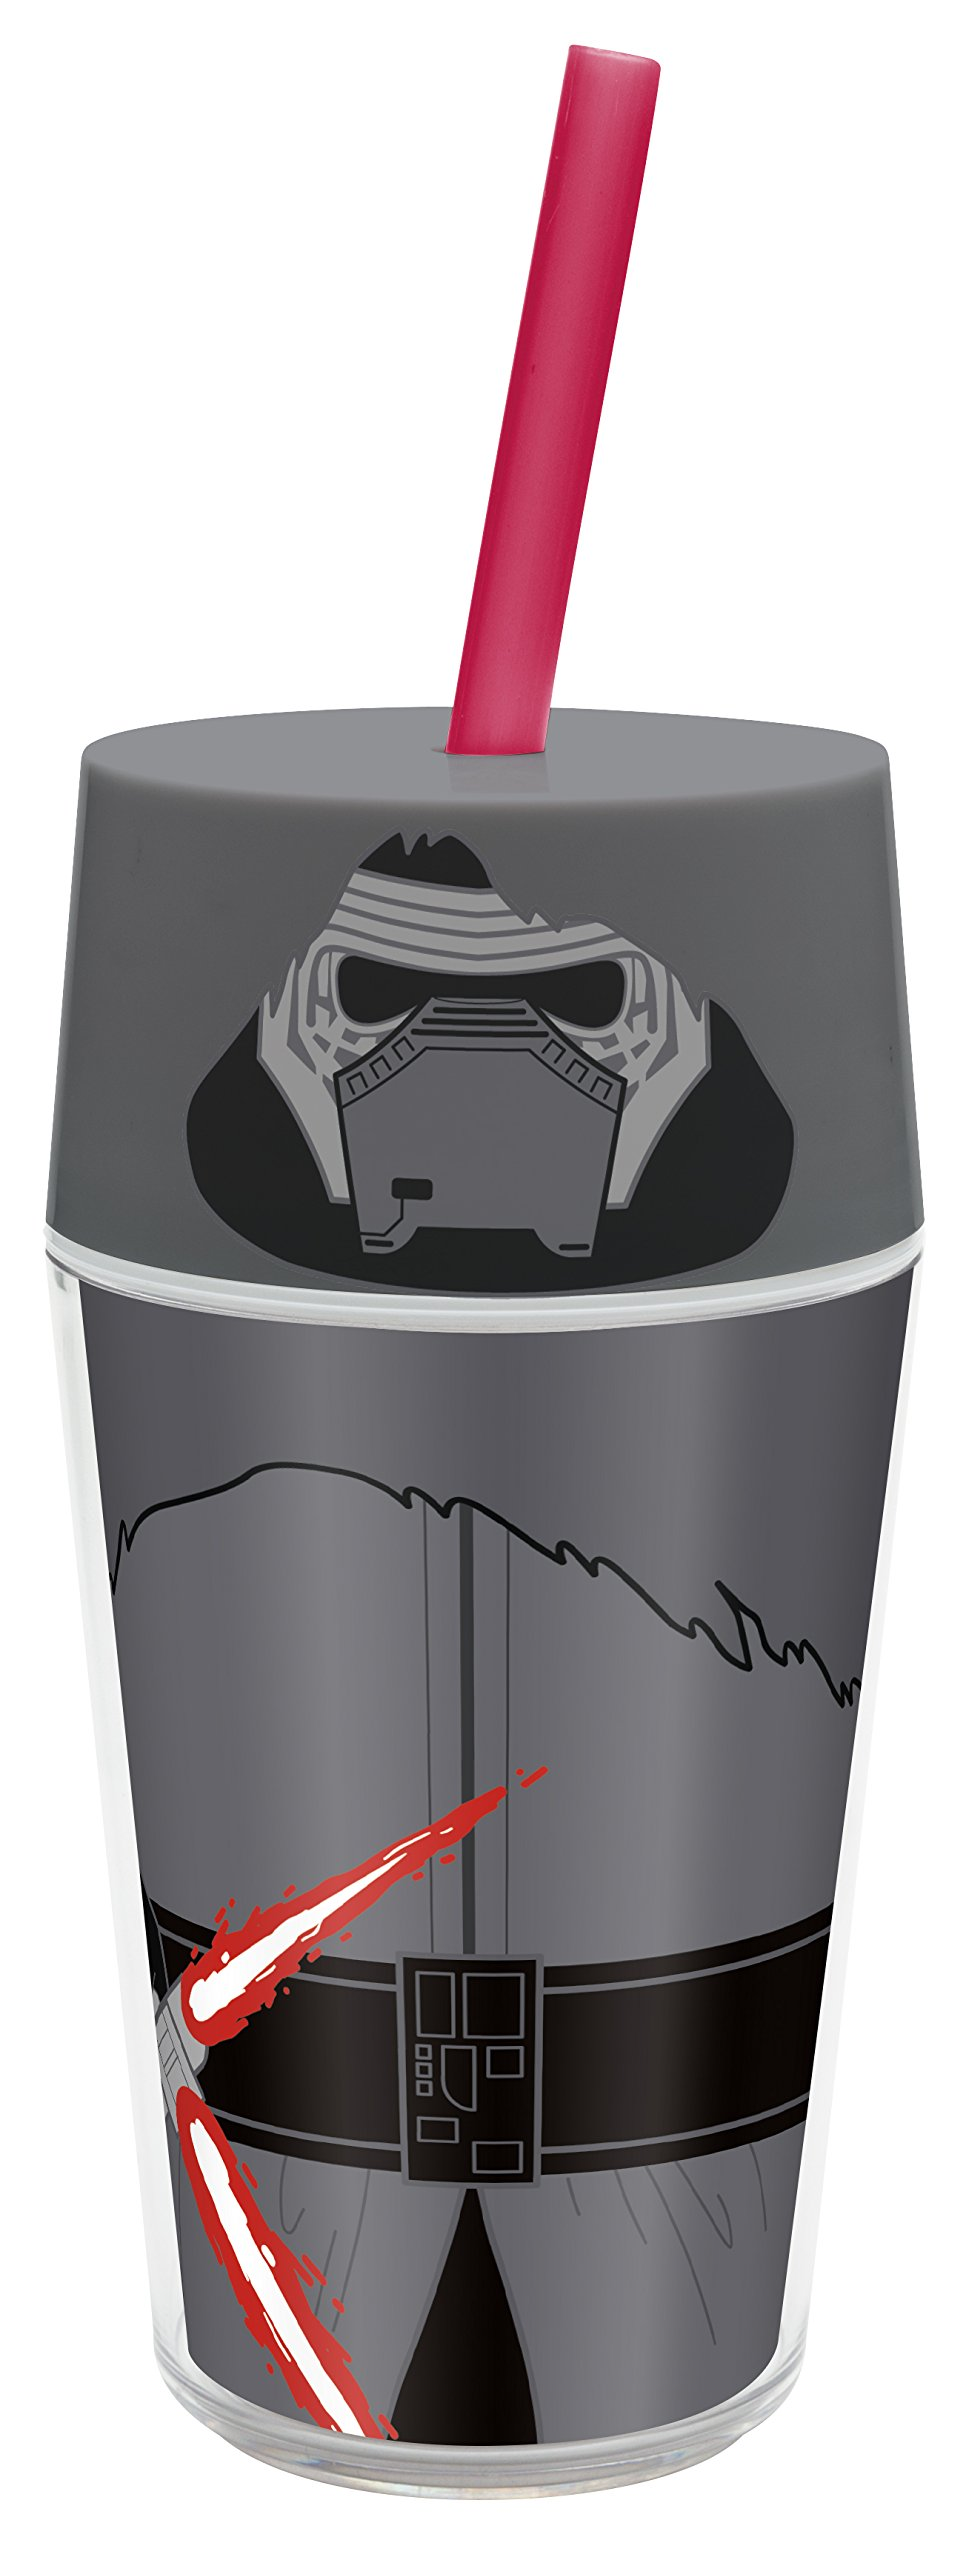 Zak! Designs Insulated Iconic Tumbler with Screw-on Lid and Straw featuring Kylo Ren from Star Wars The Force Awakens, Double Wall Construction, BPA-free Plastic, 13 oz.